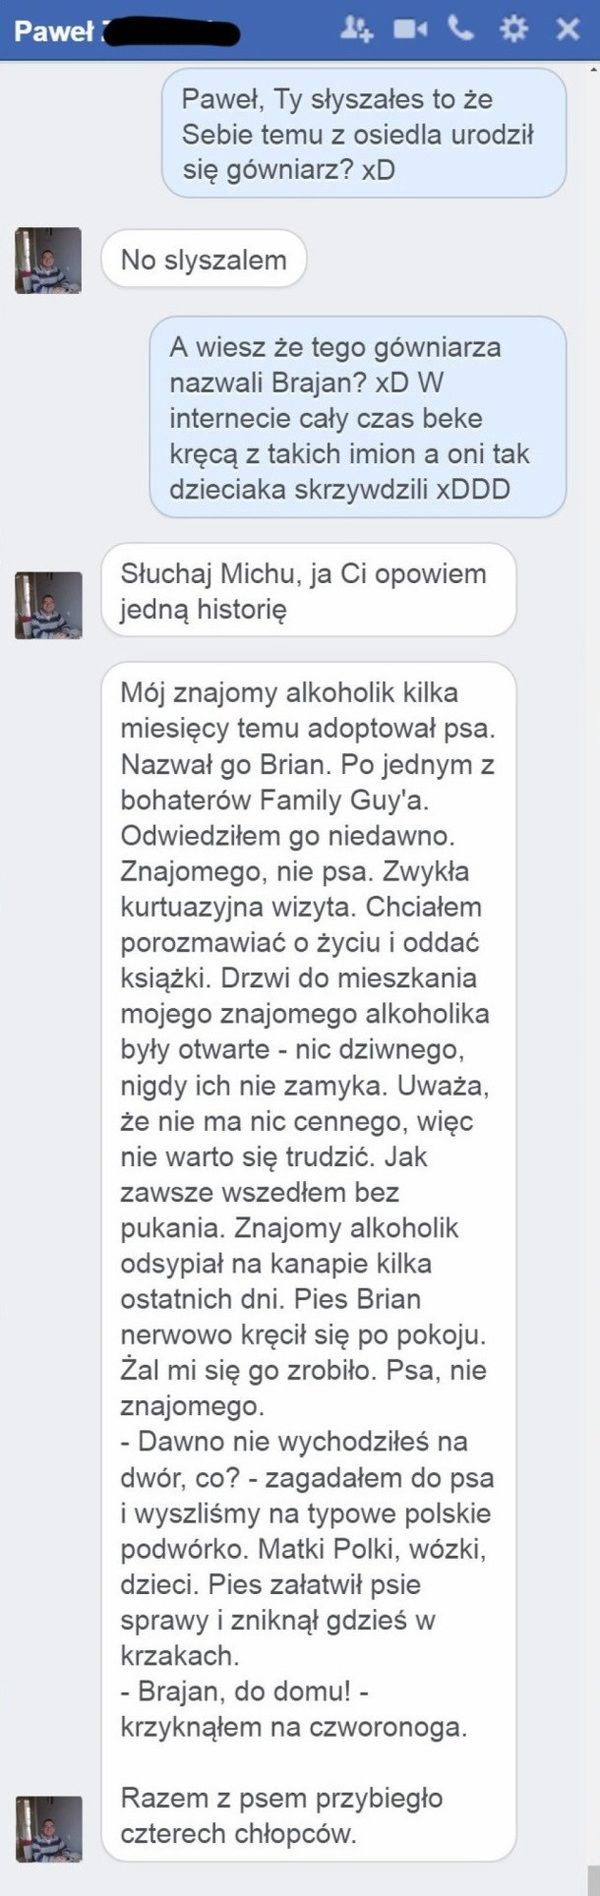 26 Mistrzowskich Rozmow Facebookowych I Smsowych Demotywatory Pl Funny Messages Life Humor Hahaha Hahaha